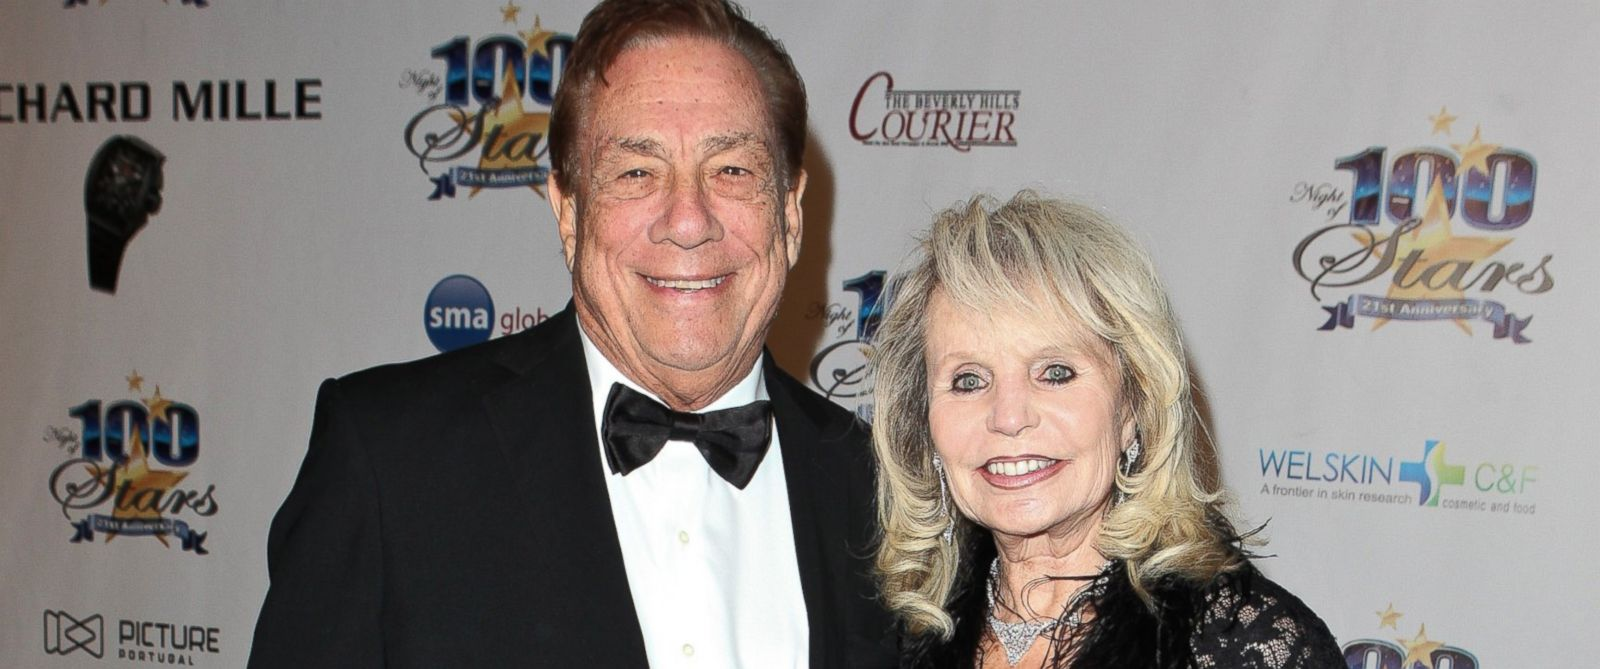 PHOTO: Donald Sterling, left, is pictured with his wife Shelly Sterling, right, at the Beverly Hills Hotel on Feb. 27, 2011 in Beverly Hills, Calif.